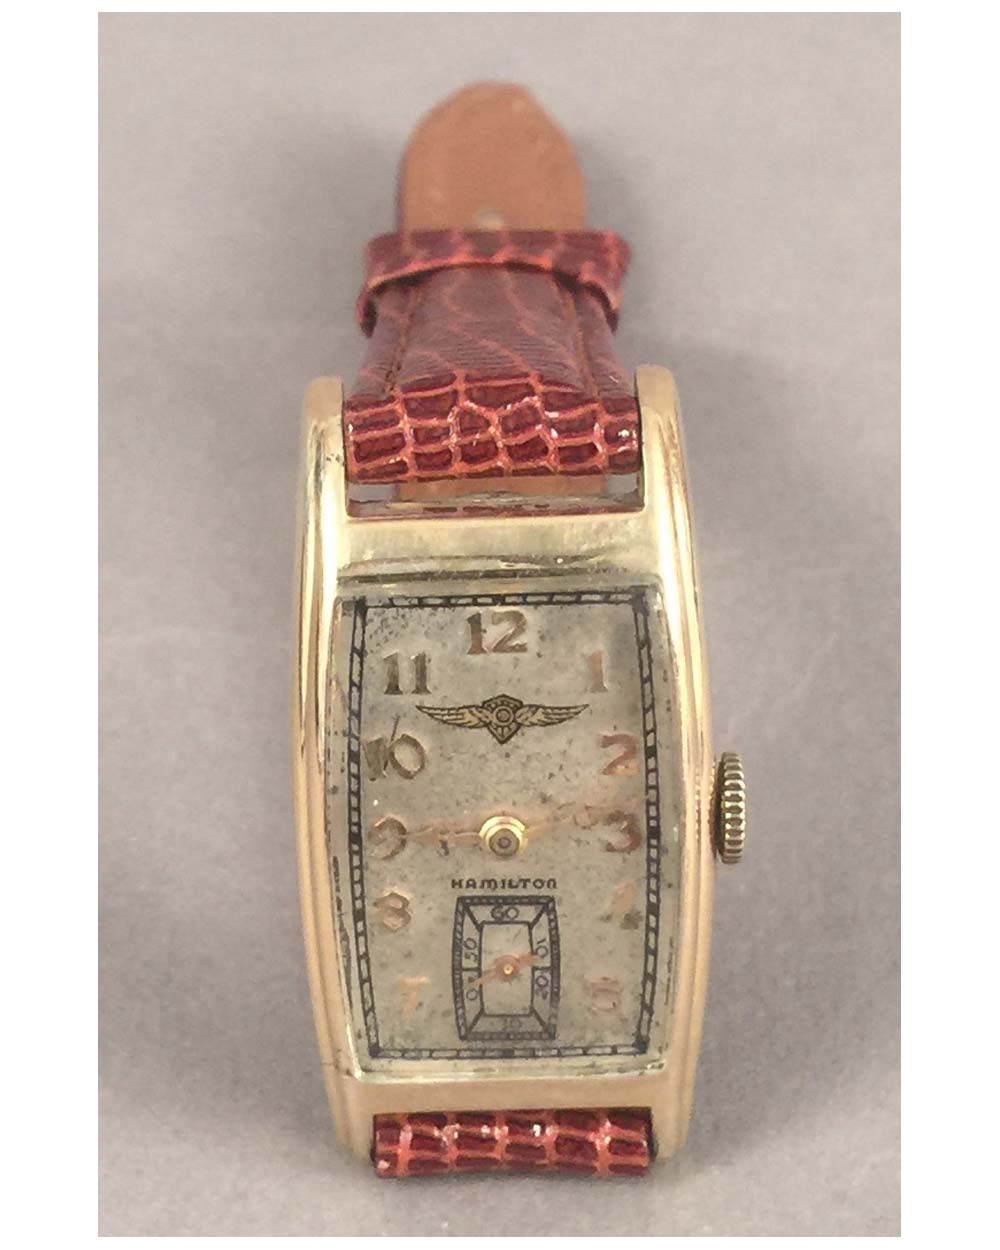 1938 Dodge - Plymouth Hamilton Curvex wrist watch